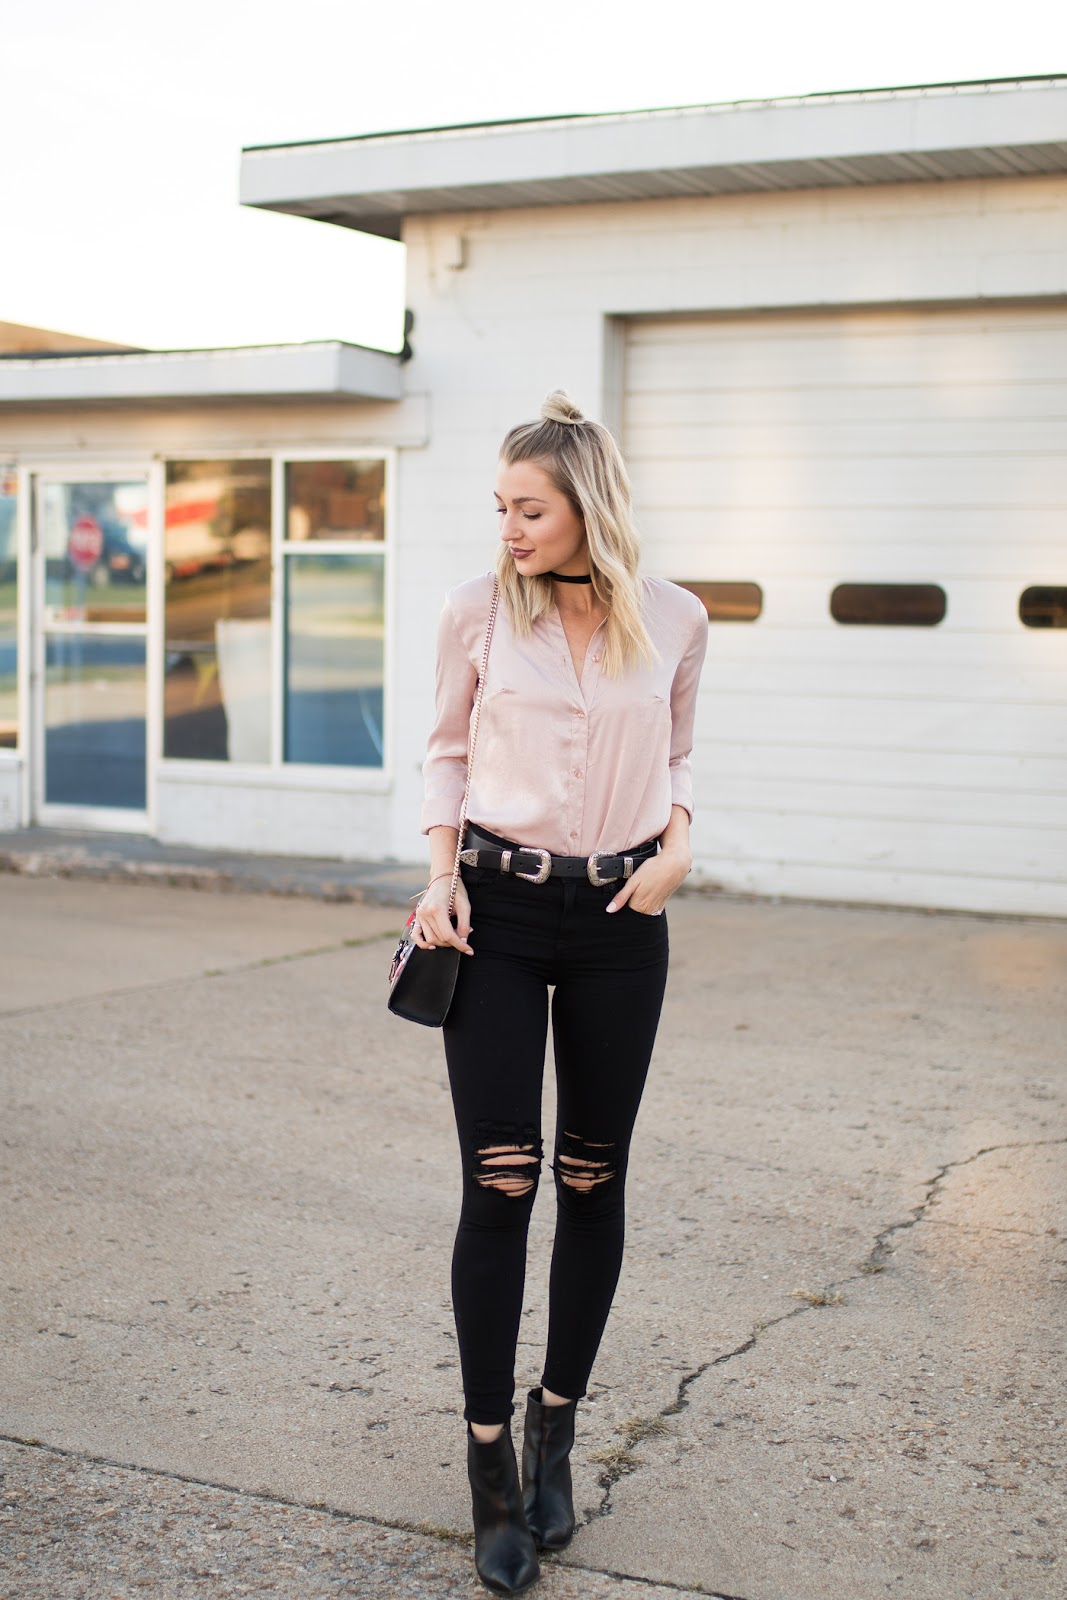 Satin/silky top with ripped skinny jeans a belt